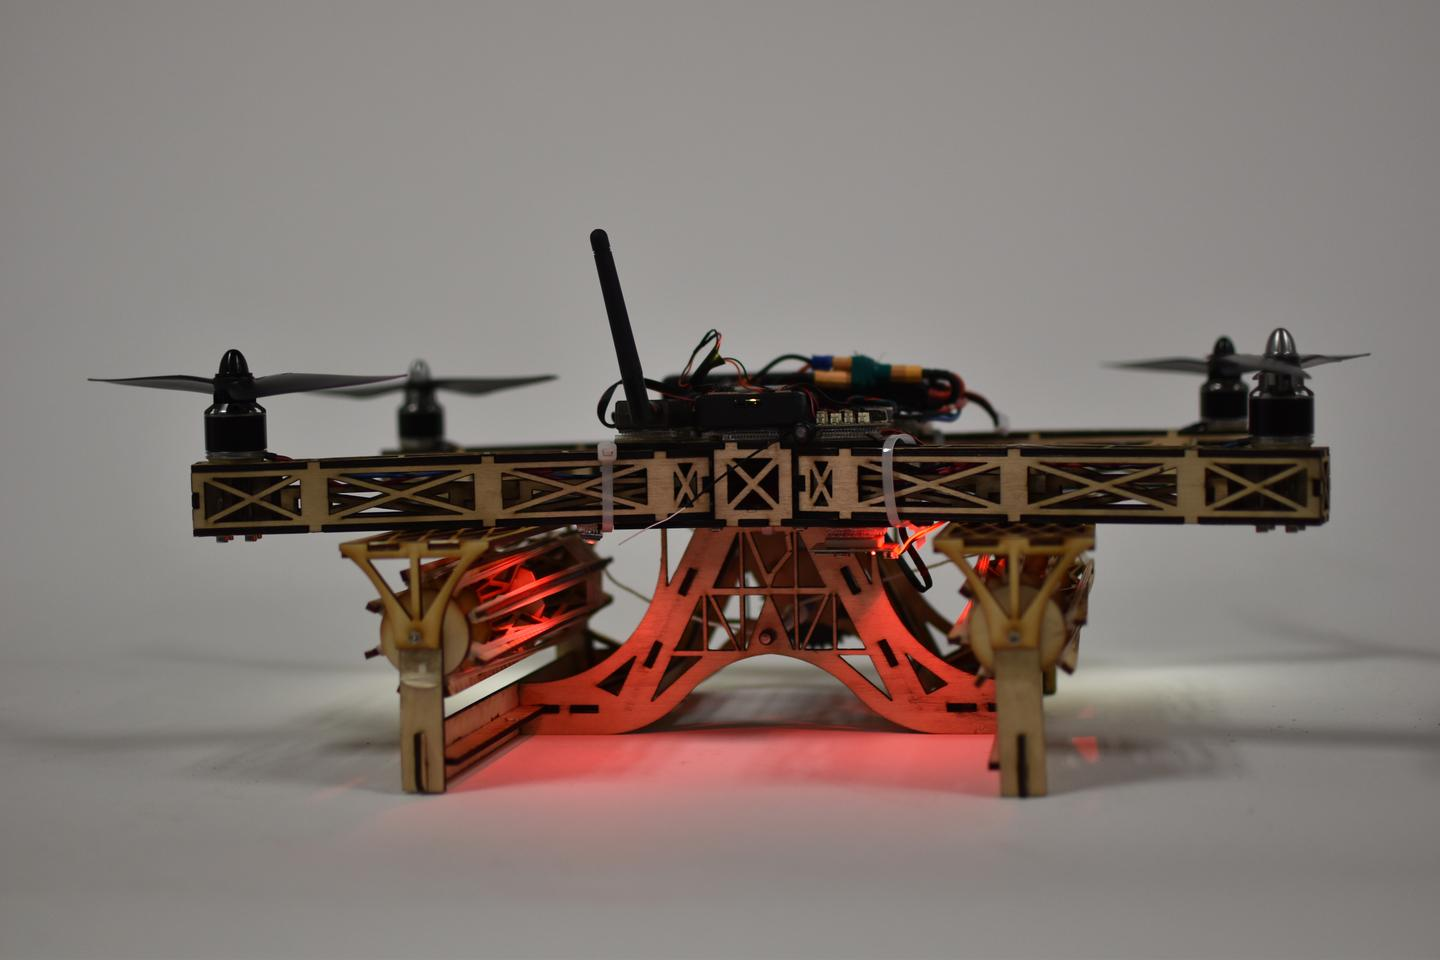 Glowforge's 3D laser printed drone with rubber band gatling guns